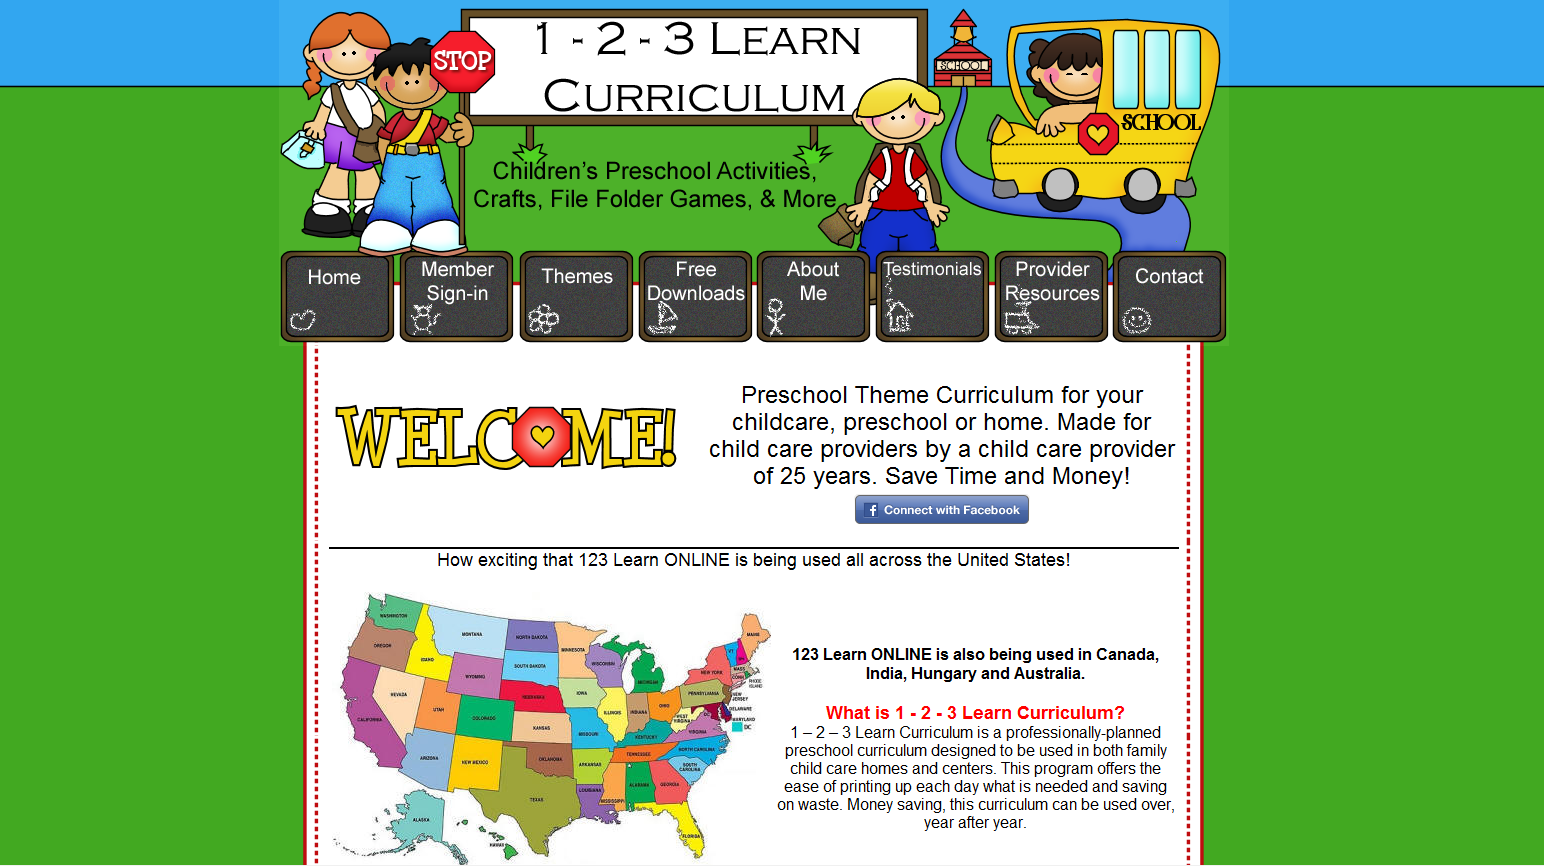 123 learn curriculum 1 - 2 - 3 Learn Curriculum: 123 Learn Curriculum Has a New Look!